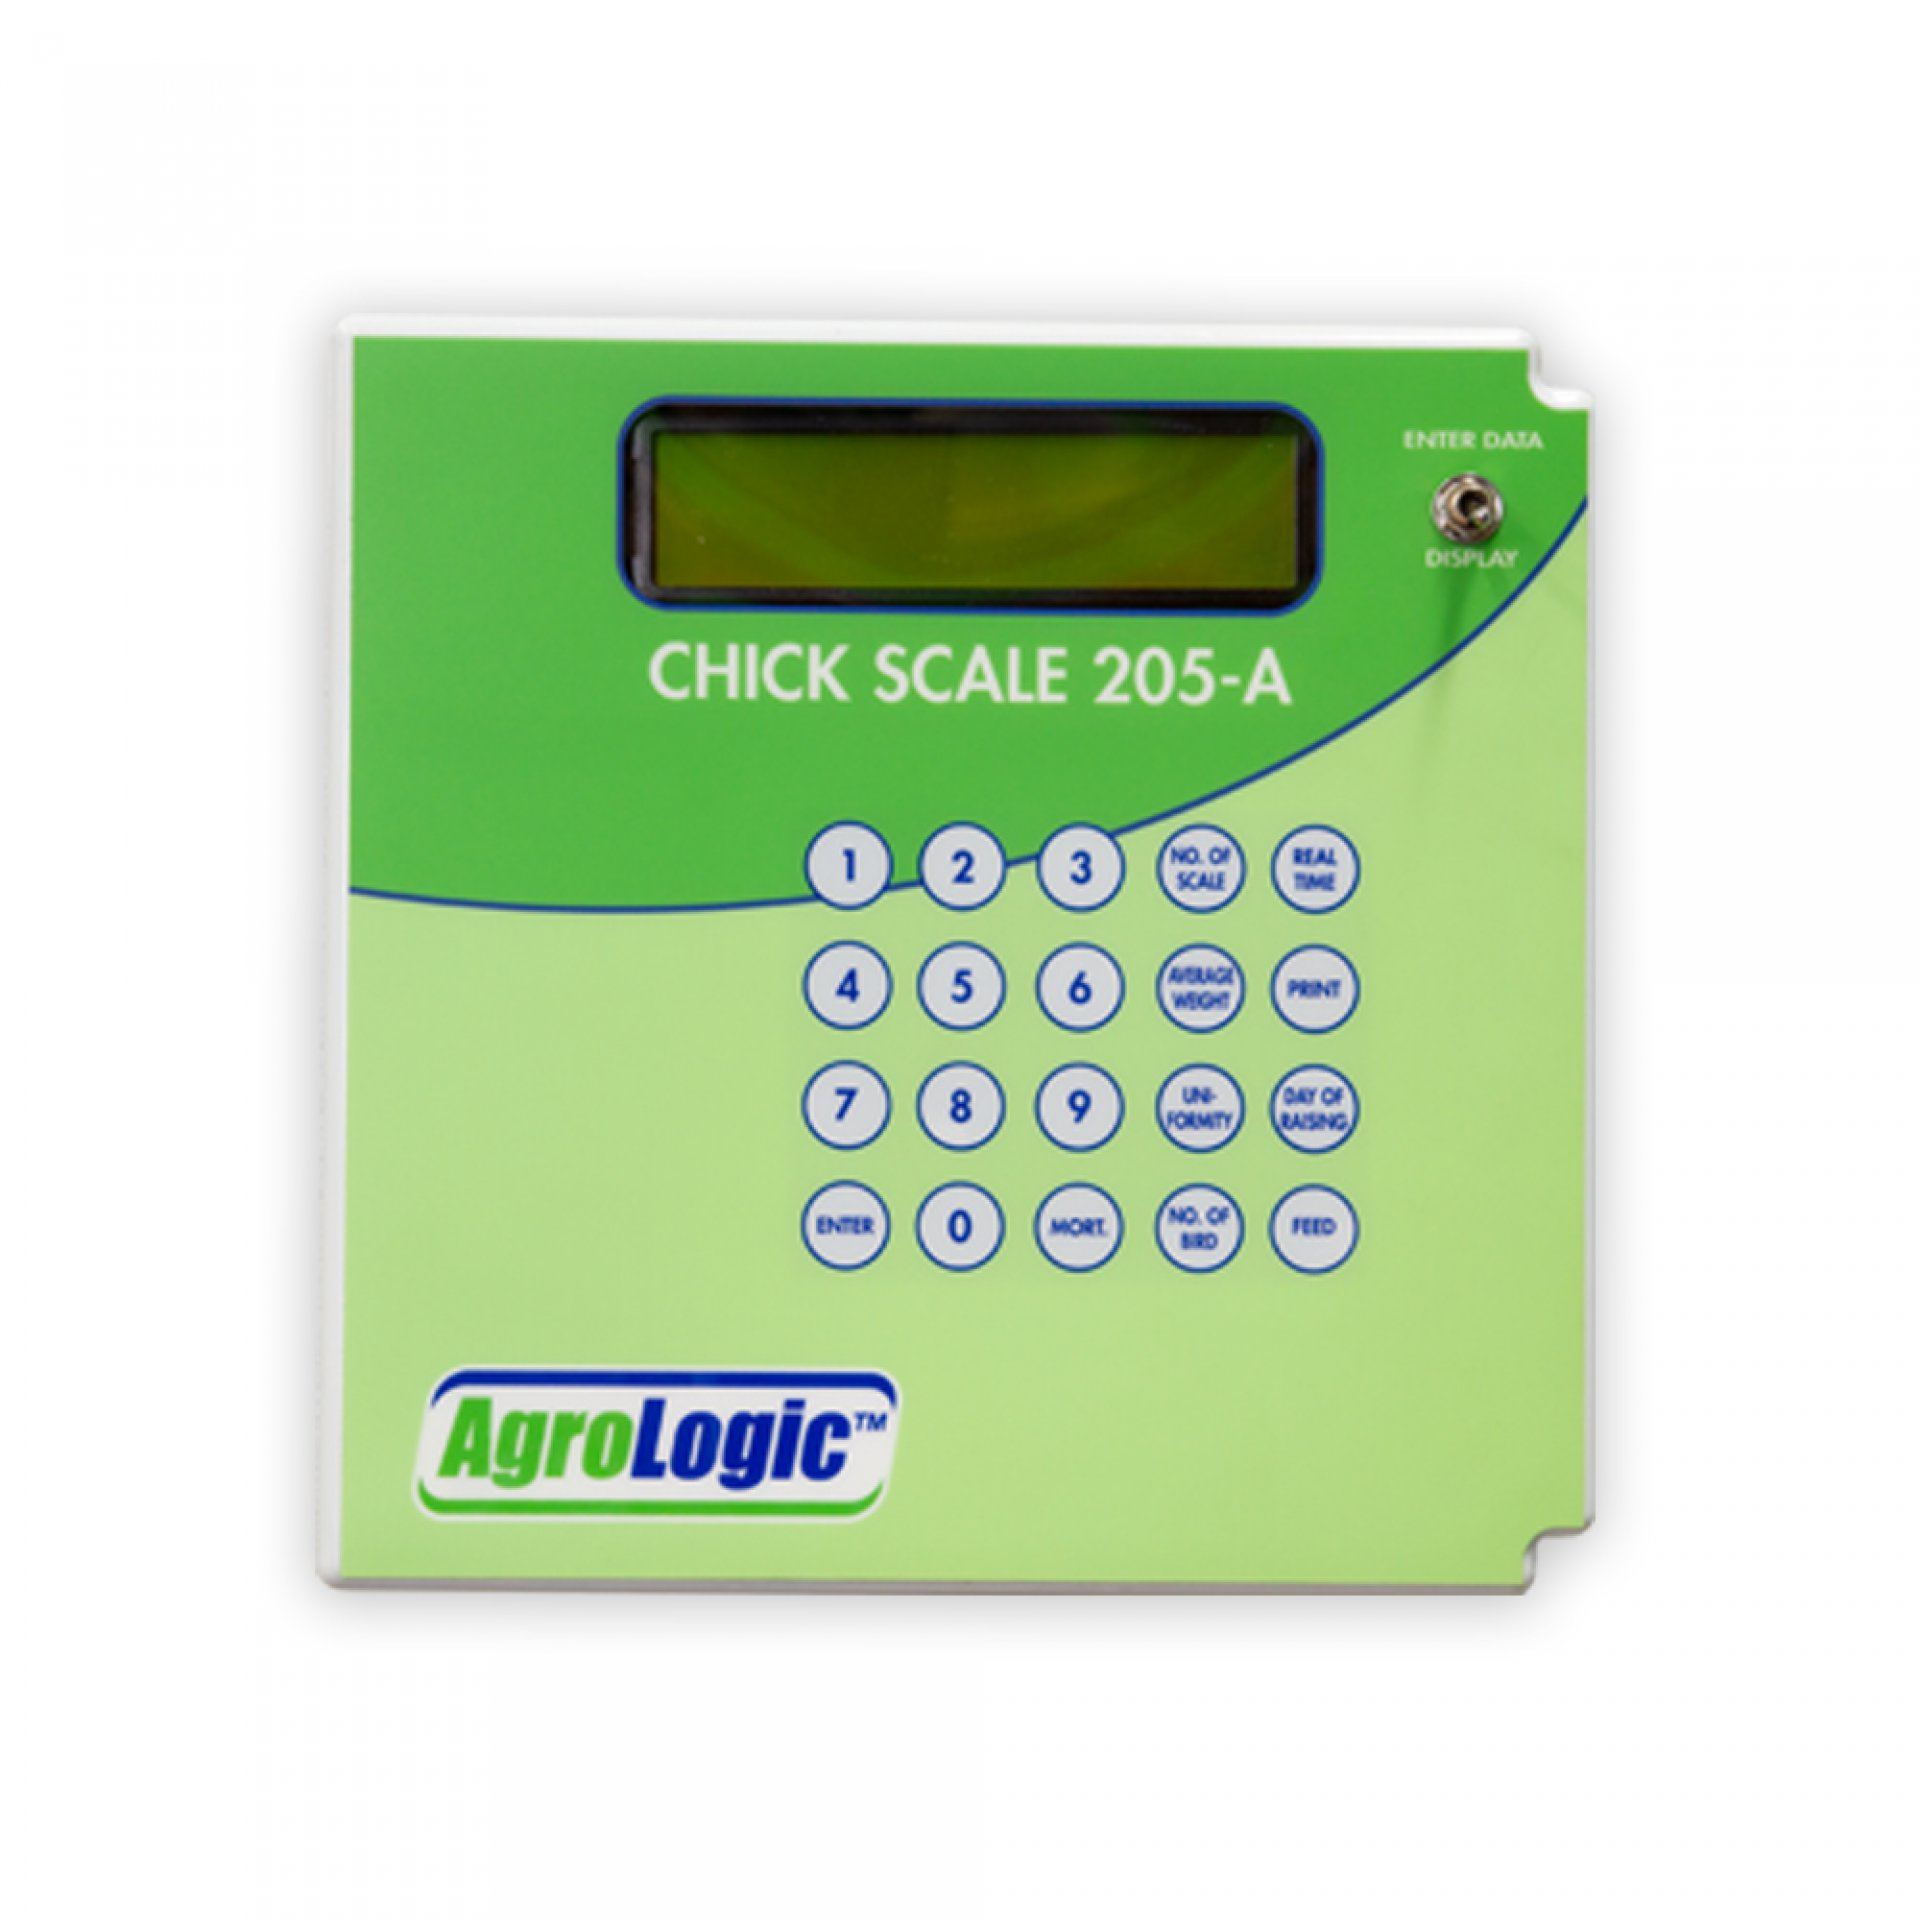 chick-scale-205-a